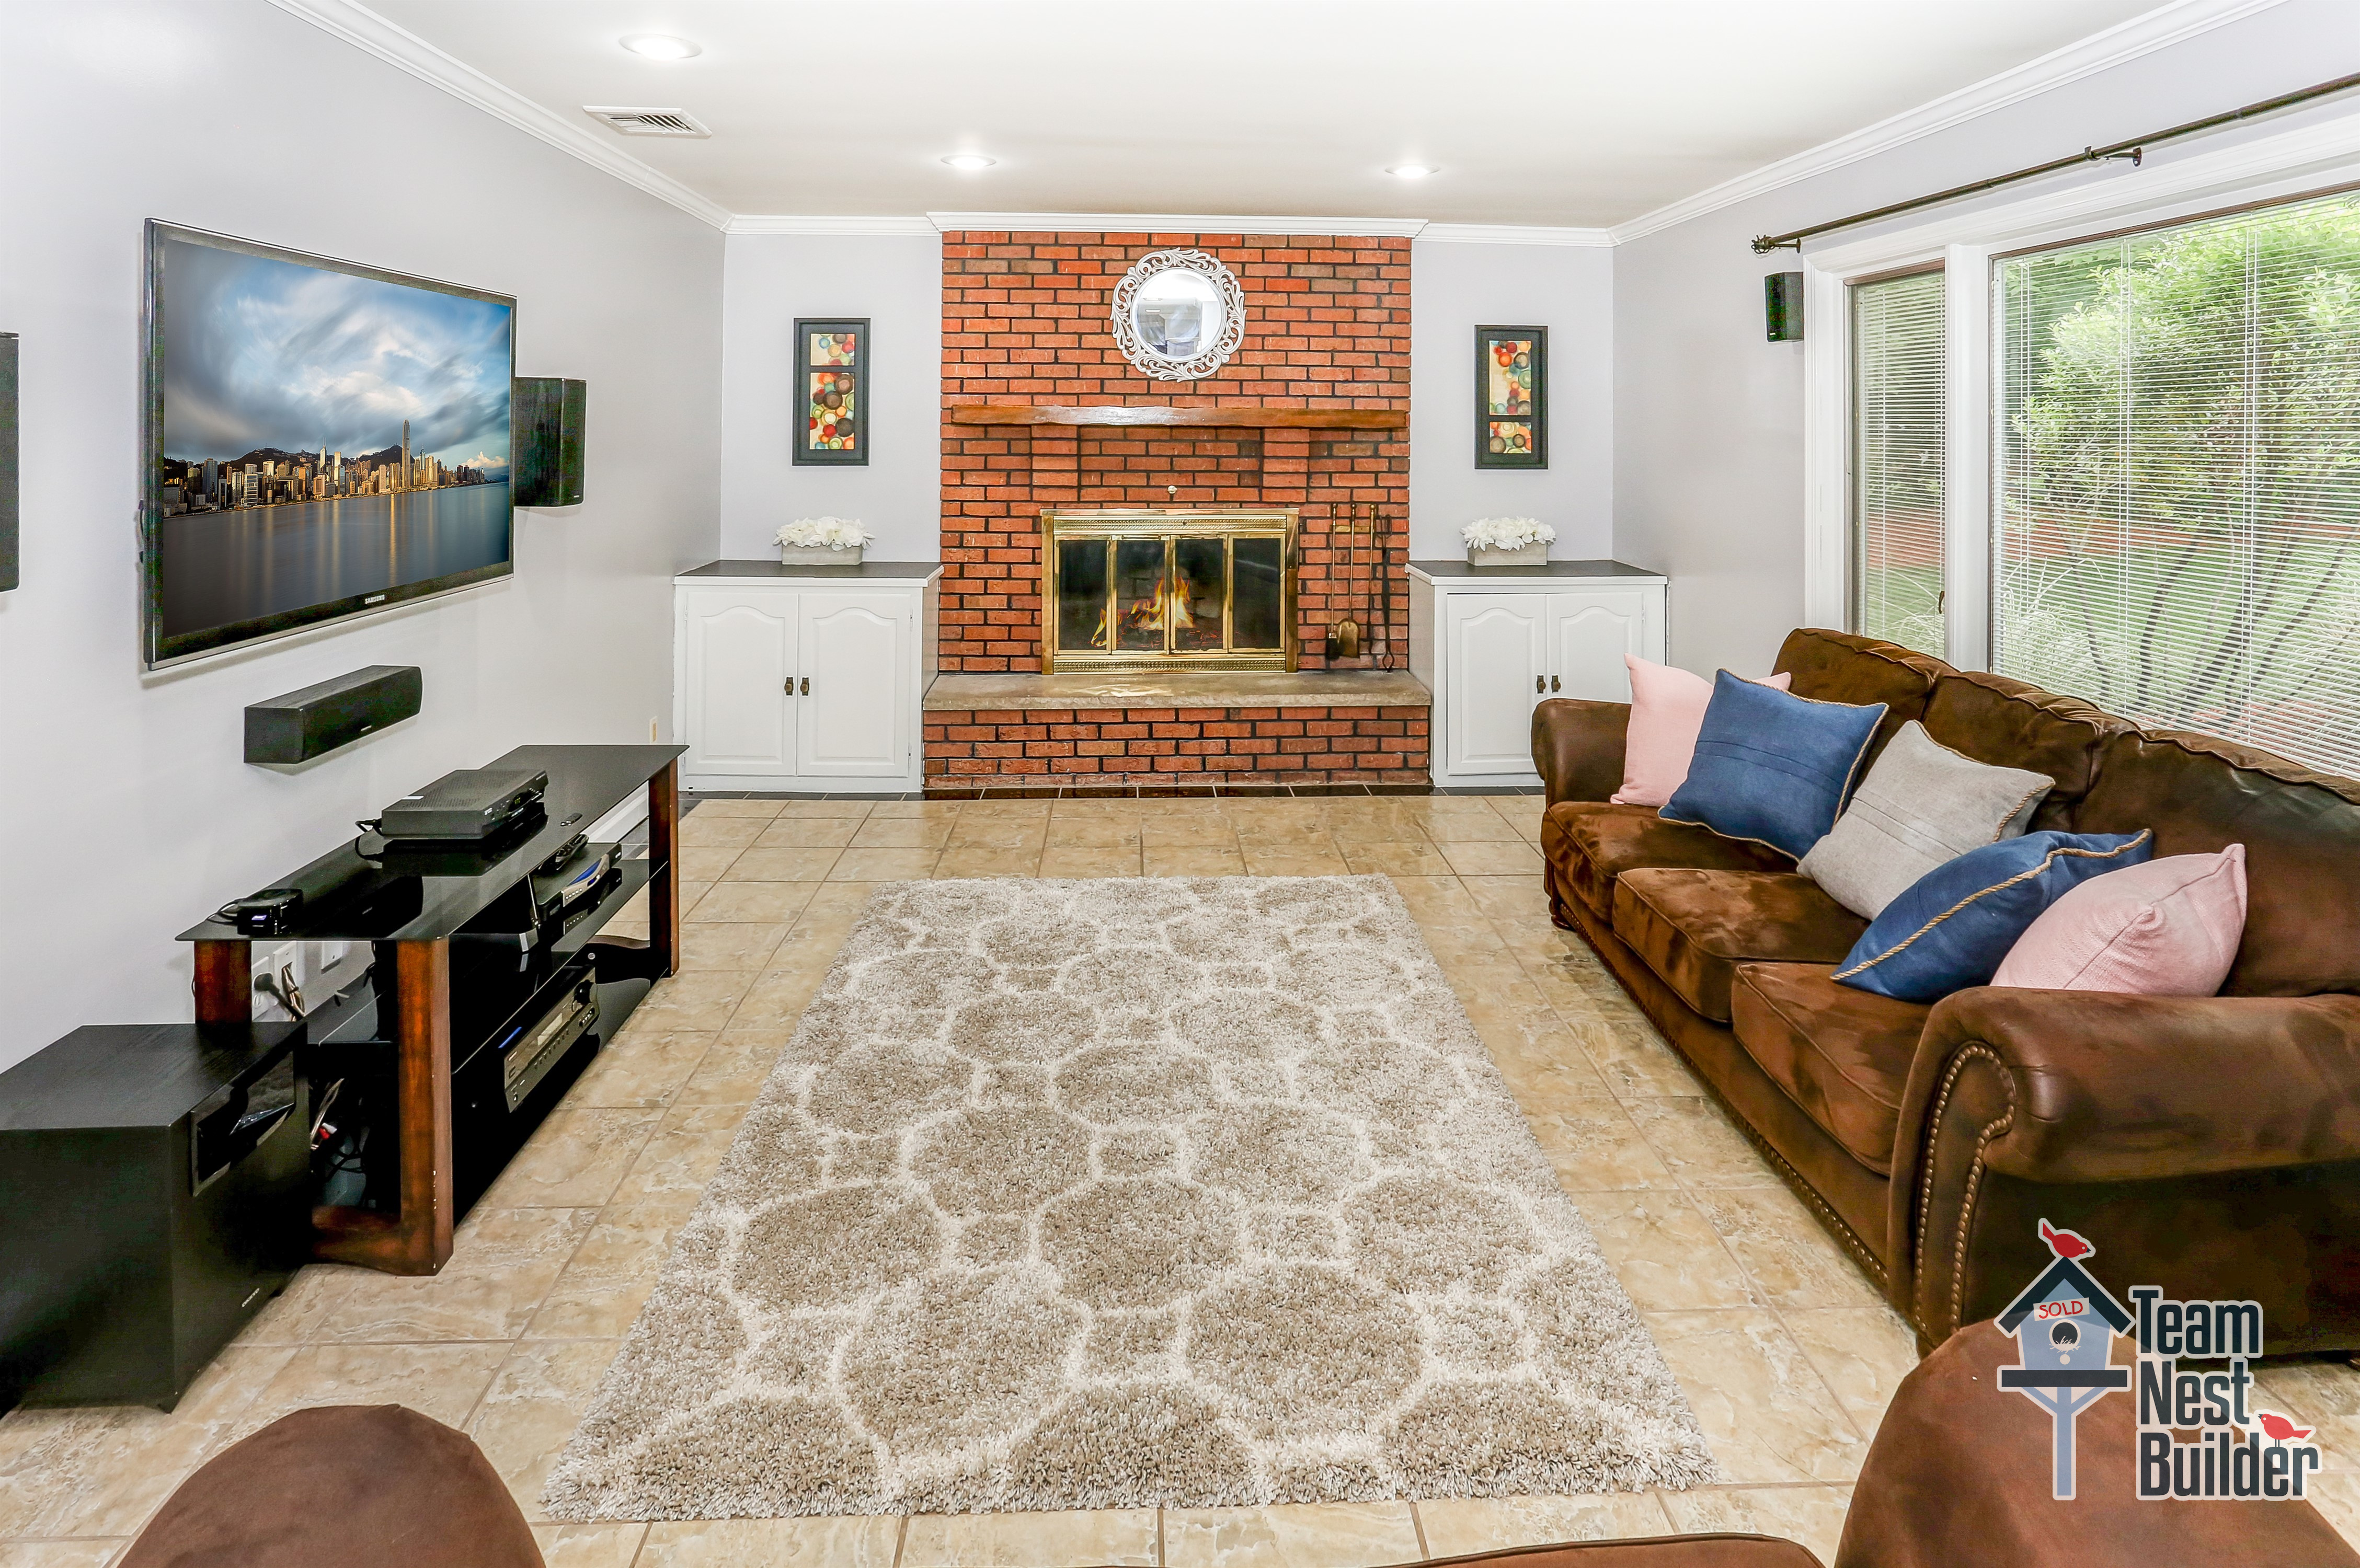 Cozy up in this family room